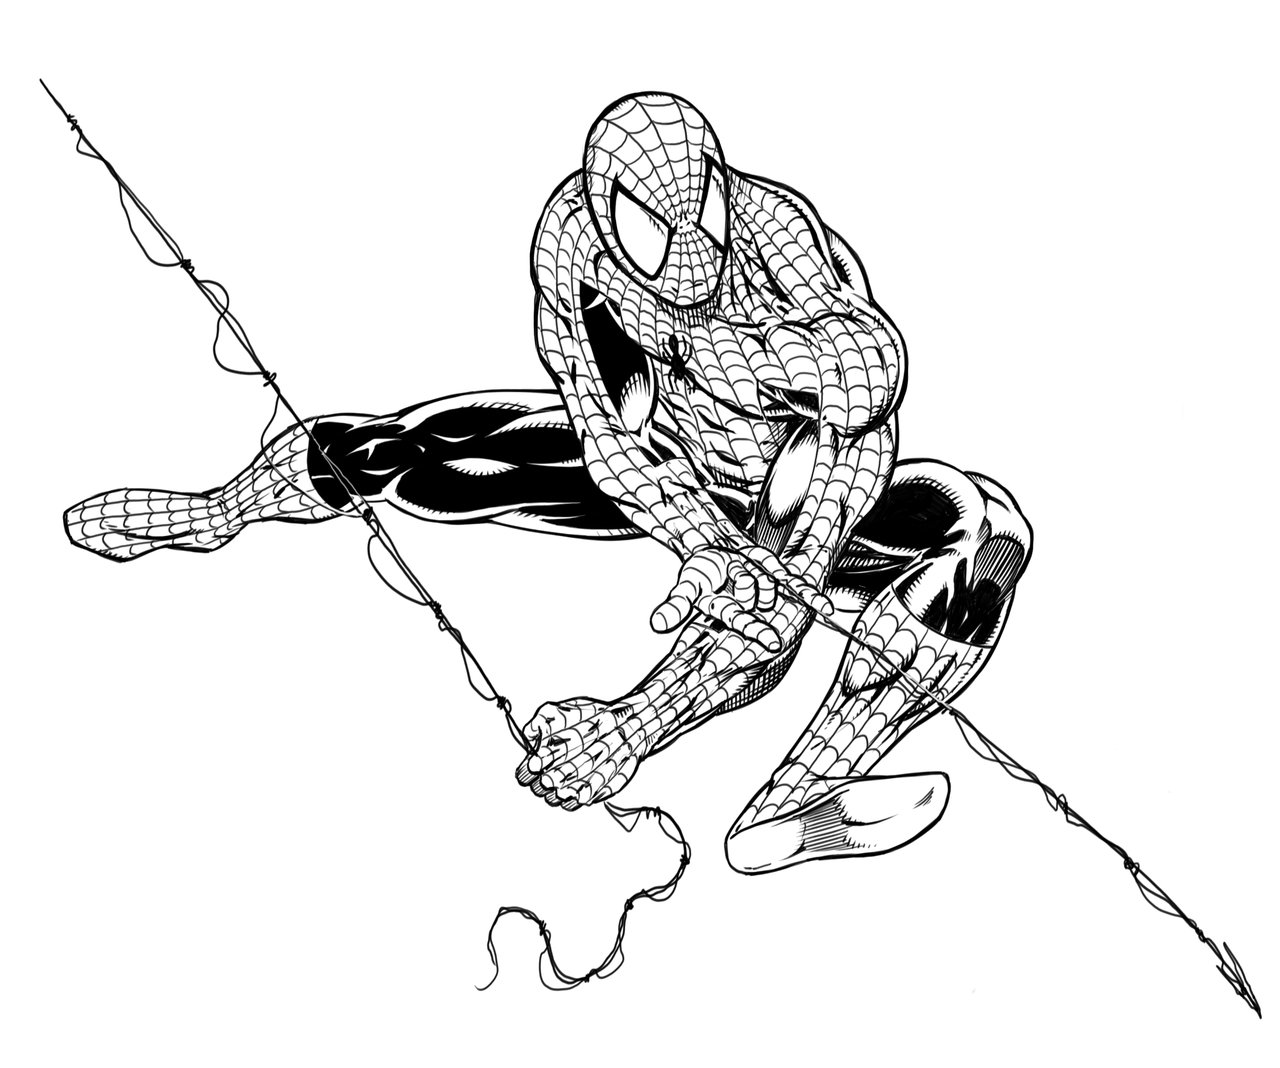 Drawn spider web spiderman Spiderman Realistic Beautiful Drawing Images